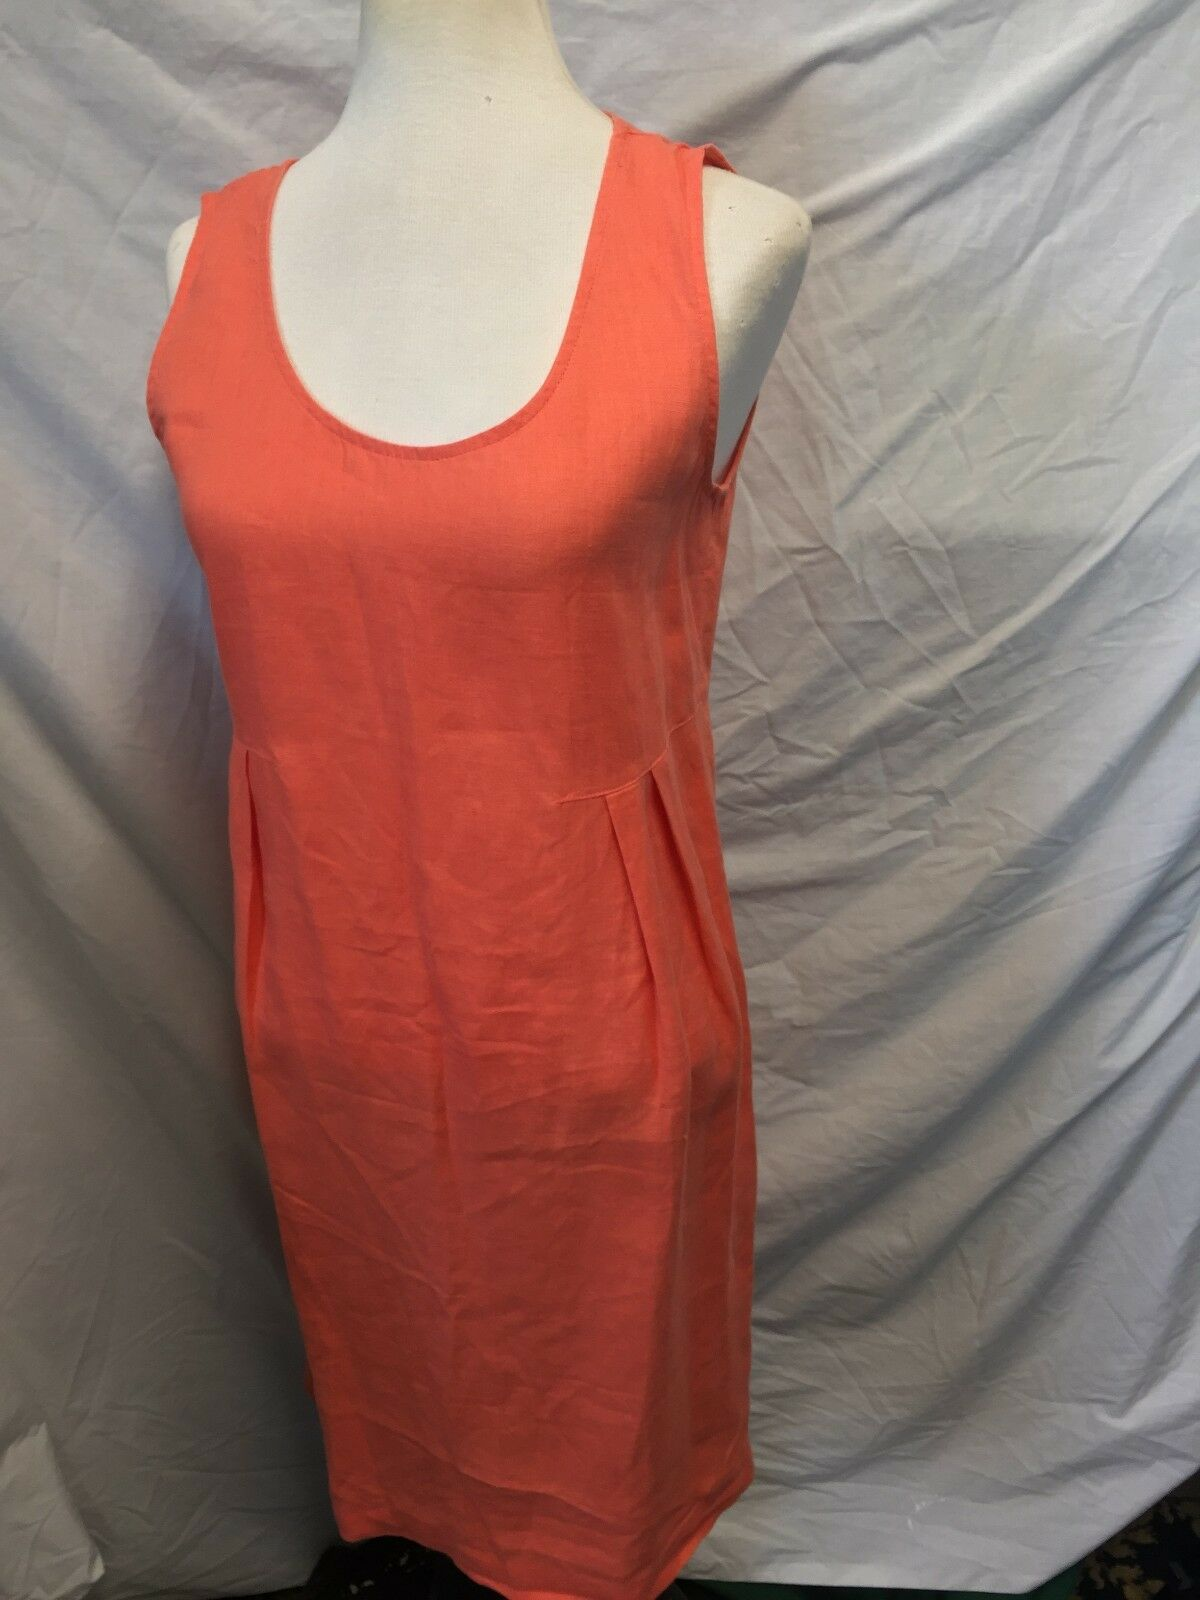 J JILL Orange LINEN CASUAL PARTY DRESS Größe XS EXTRA SMALL CHEST 34